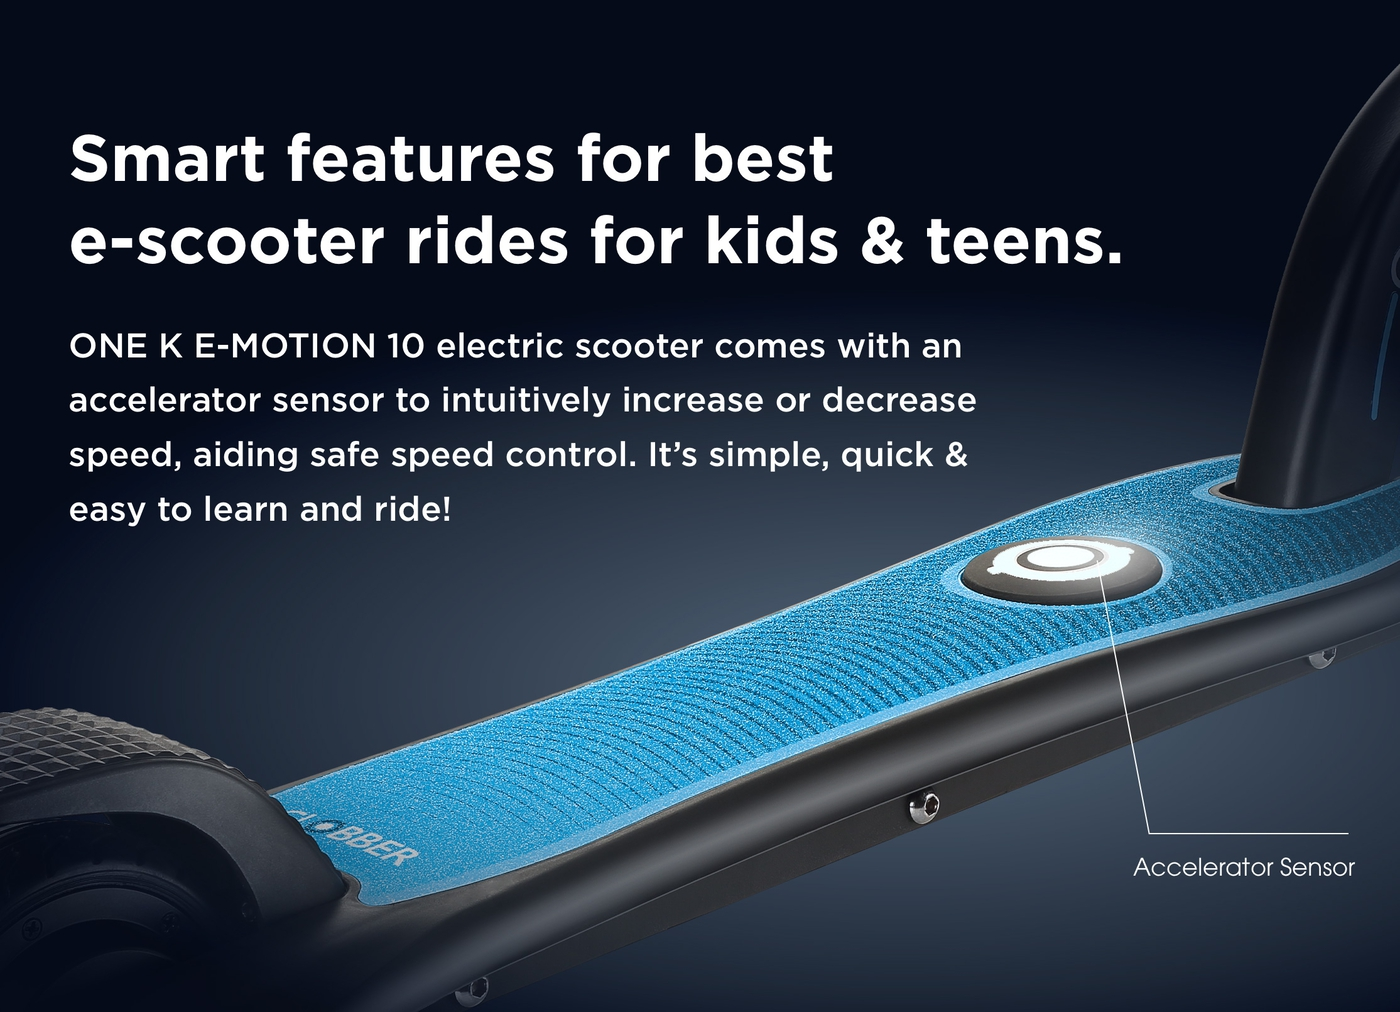 Smart features for best e-scooter rides for kids & teens.